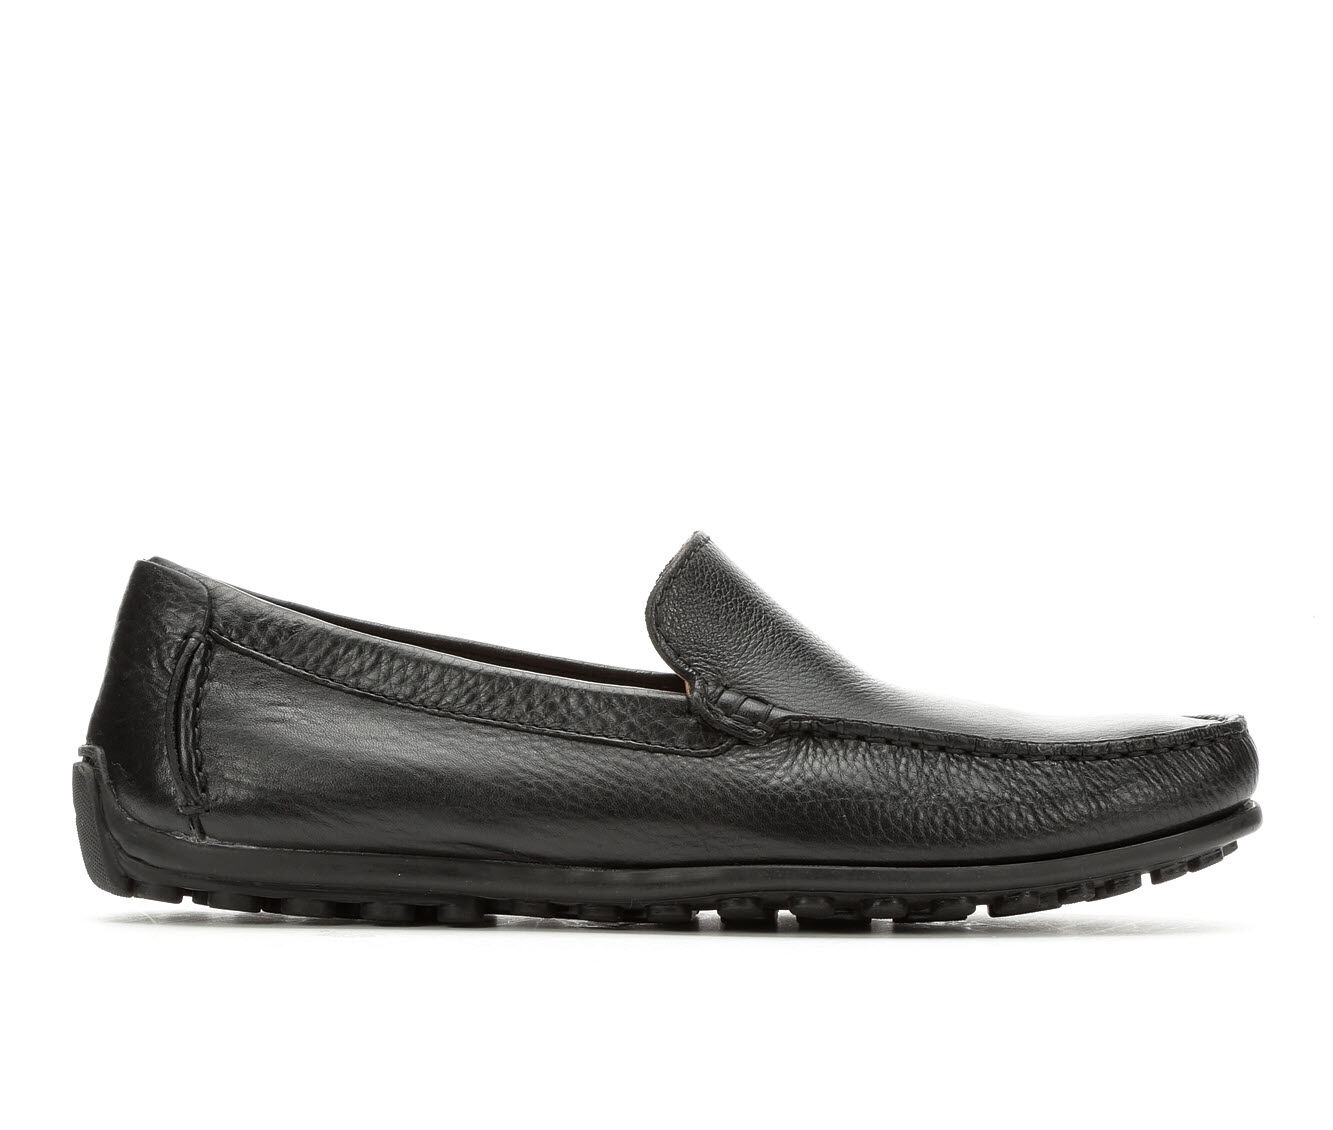 Men's Clarks Hamilton Free Loafers Black